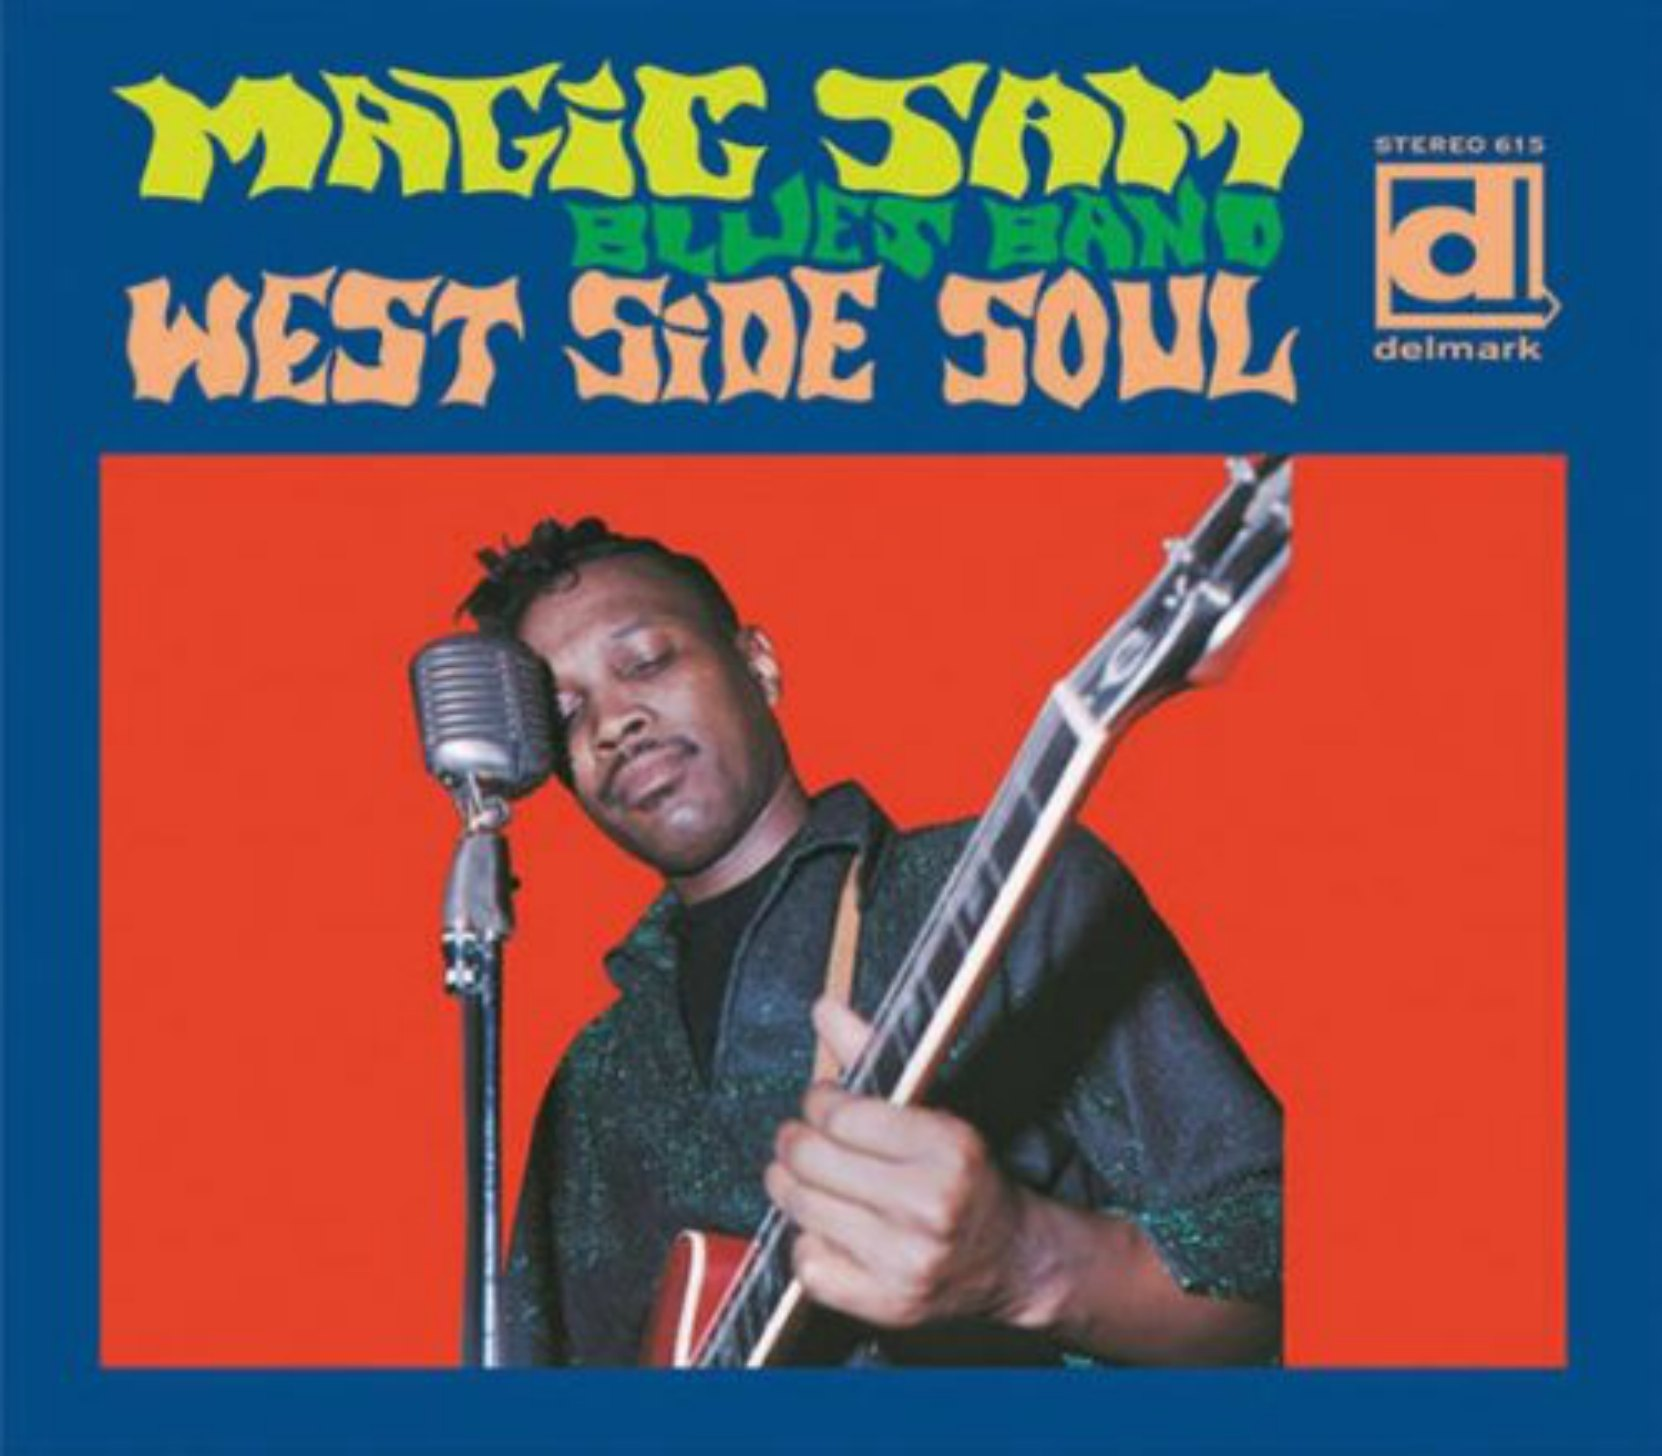 CD cover, West Side Soul, by Magic Sam Blues Band, released by Delmark Records.